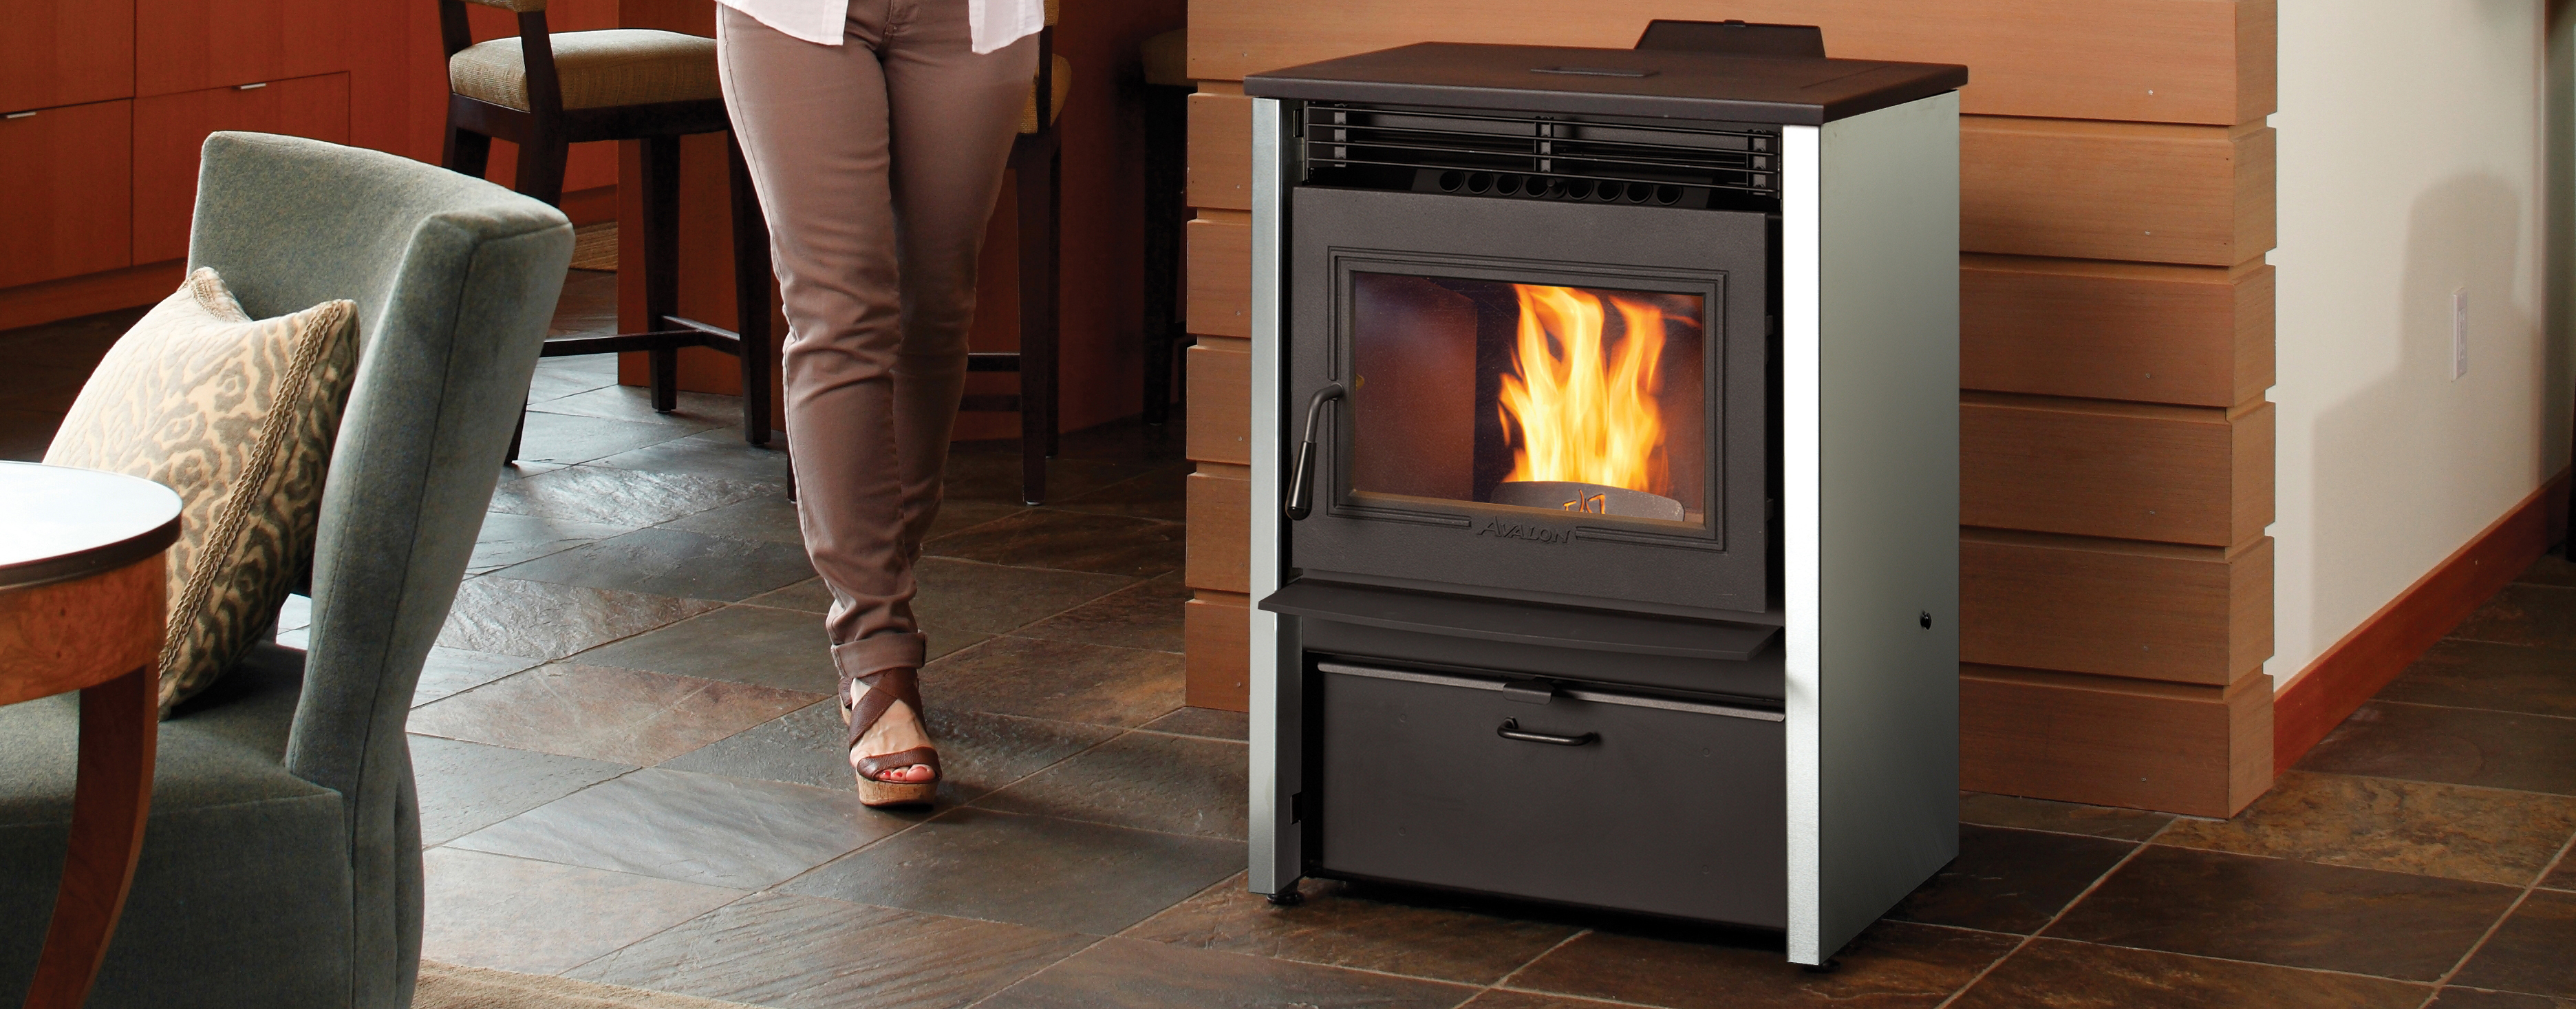 Pellet Stove Gas Stoves Wood Burning Stove Gap Pa